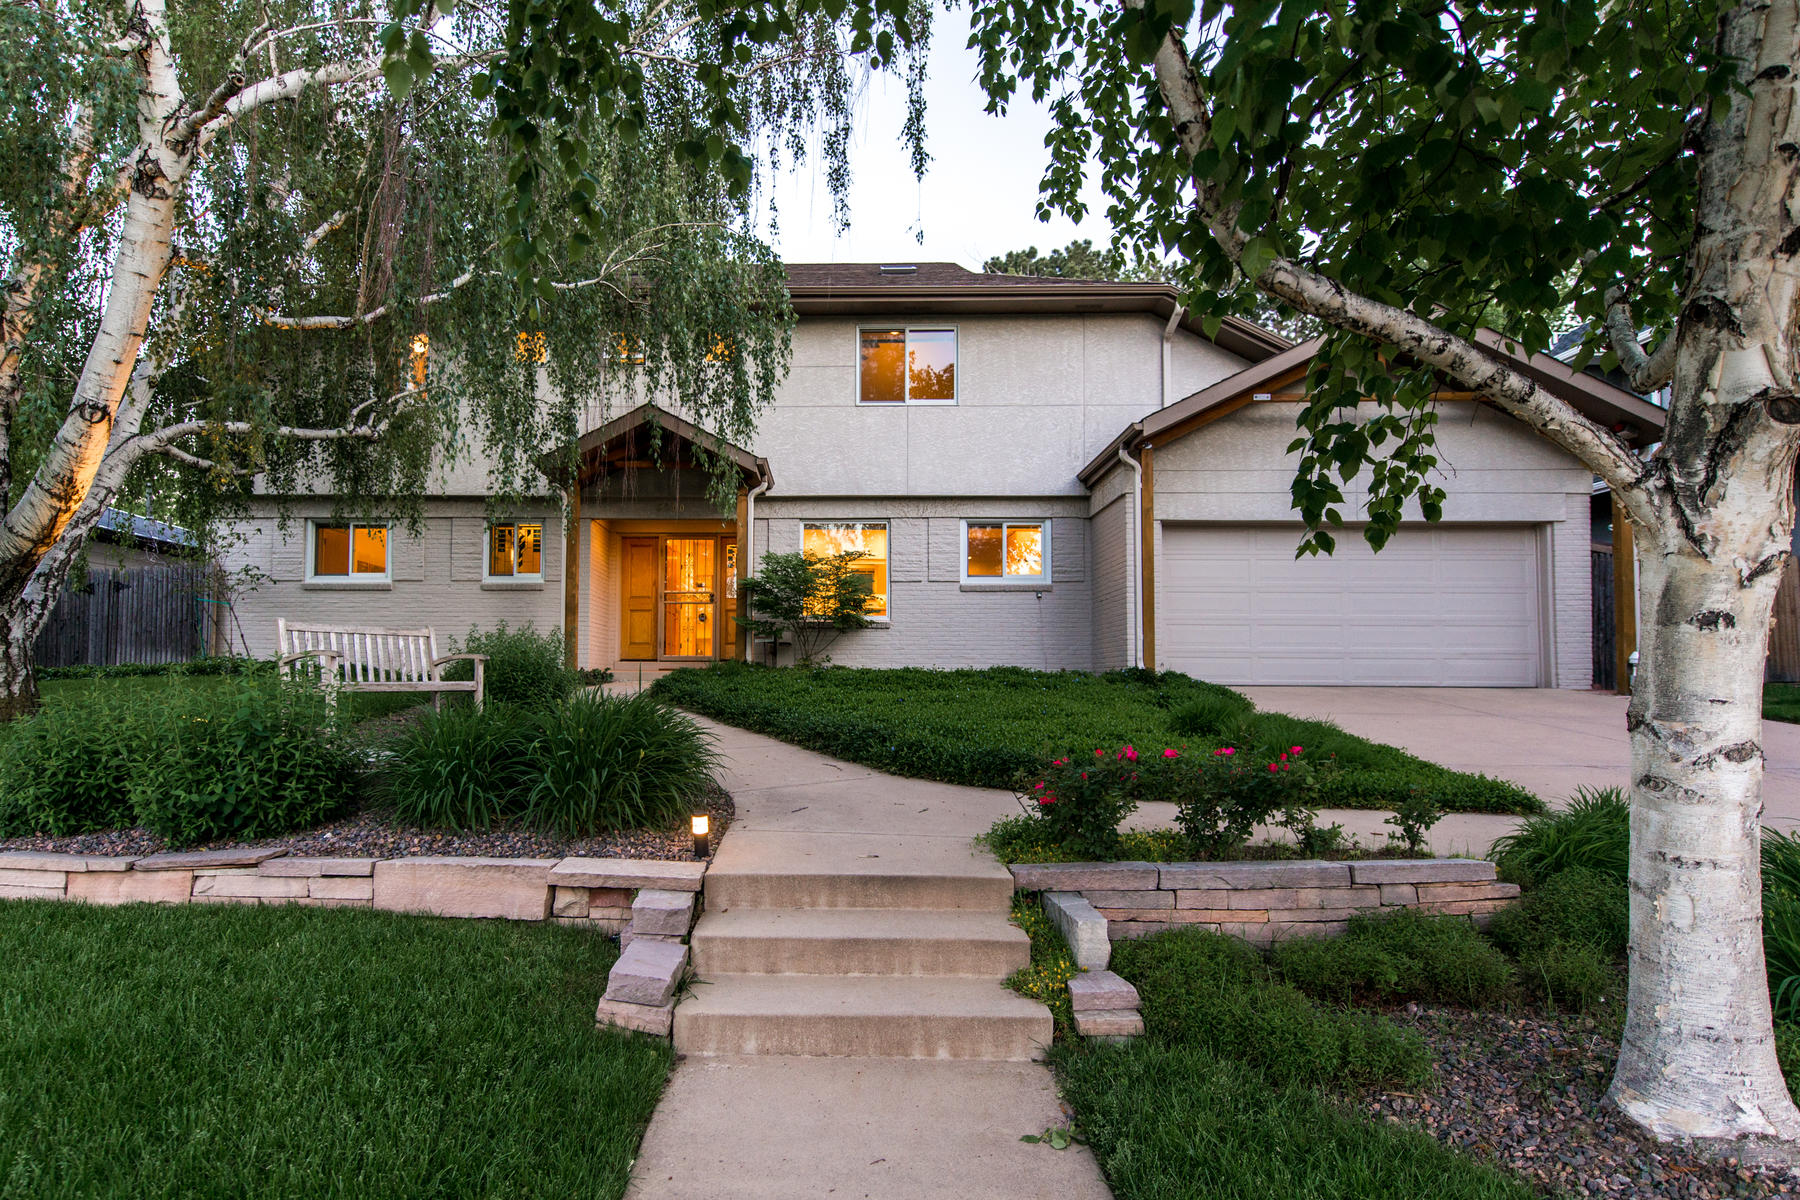 Single Family Home for Active at Rare Chance To Get Into Highly Desirable Stokes Belcaro Neighborhood! 3300 East Virginia Avenue Denver, Colorado 80209 United States